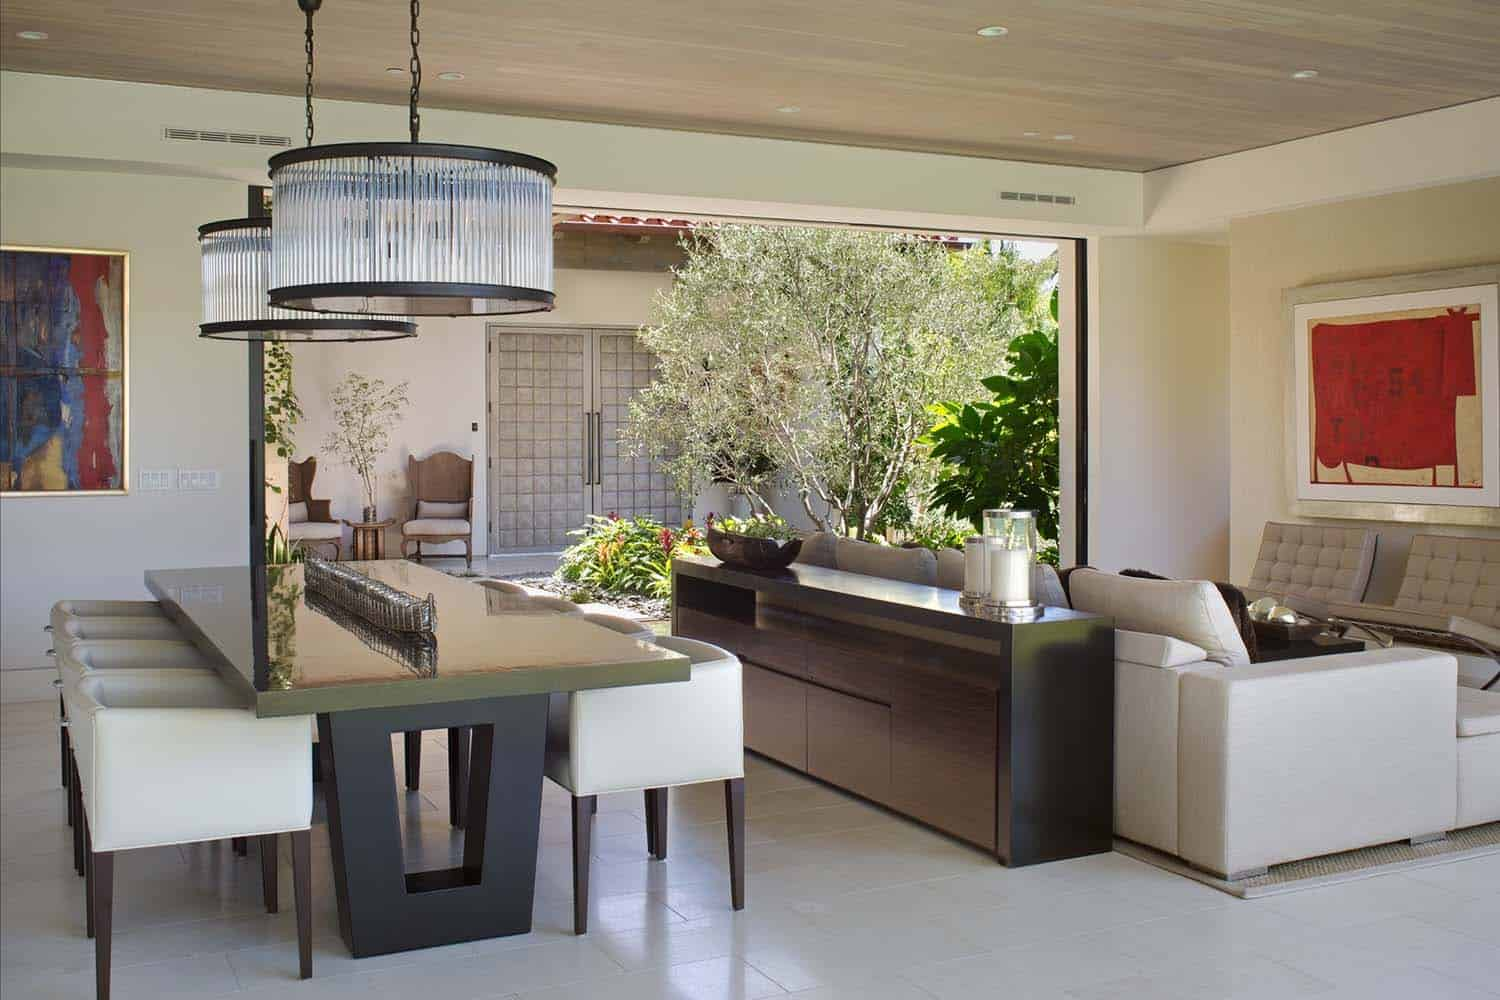 Contemporary-Mediterranean-Home-Christian Rice Architects-02-1 Kindesign